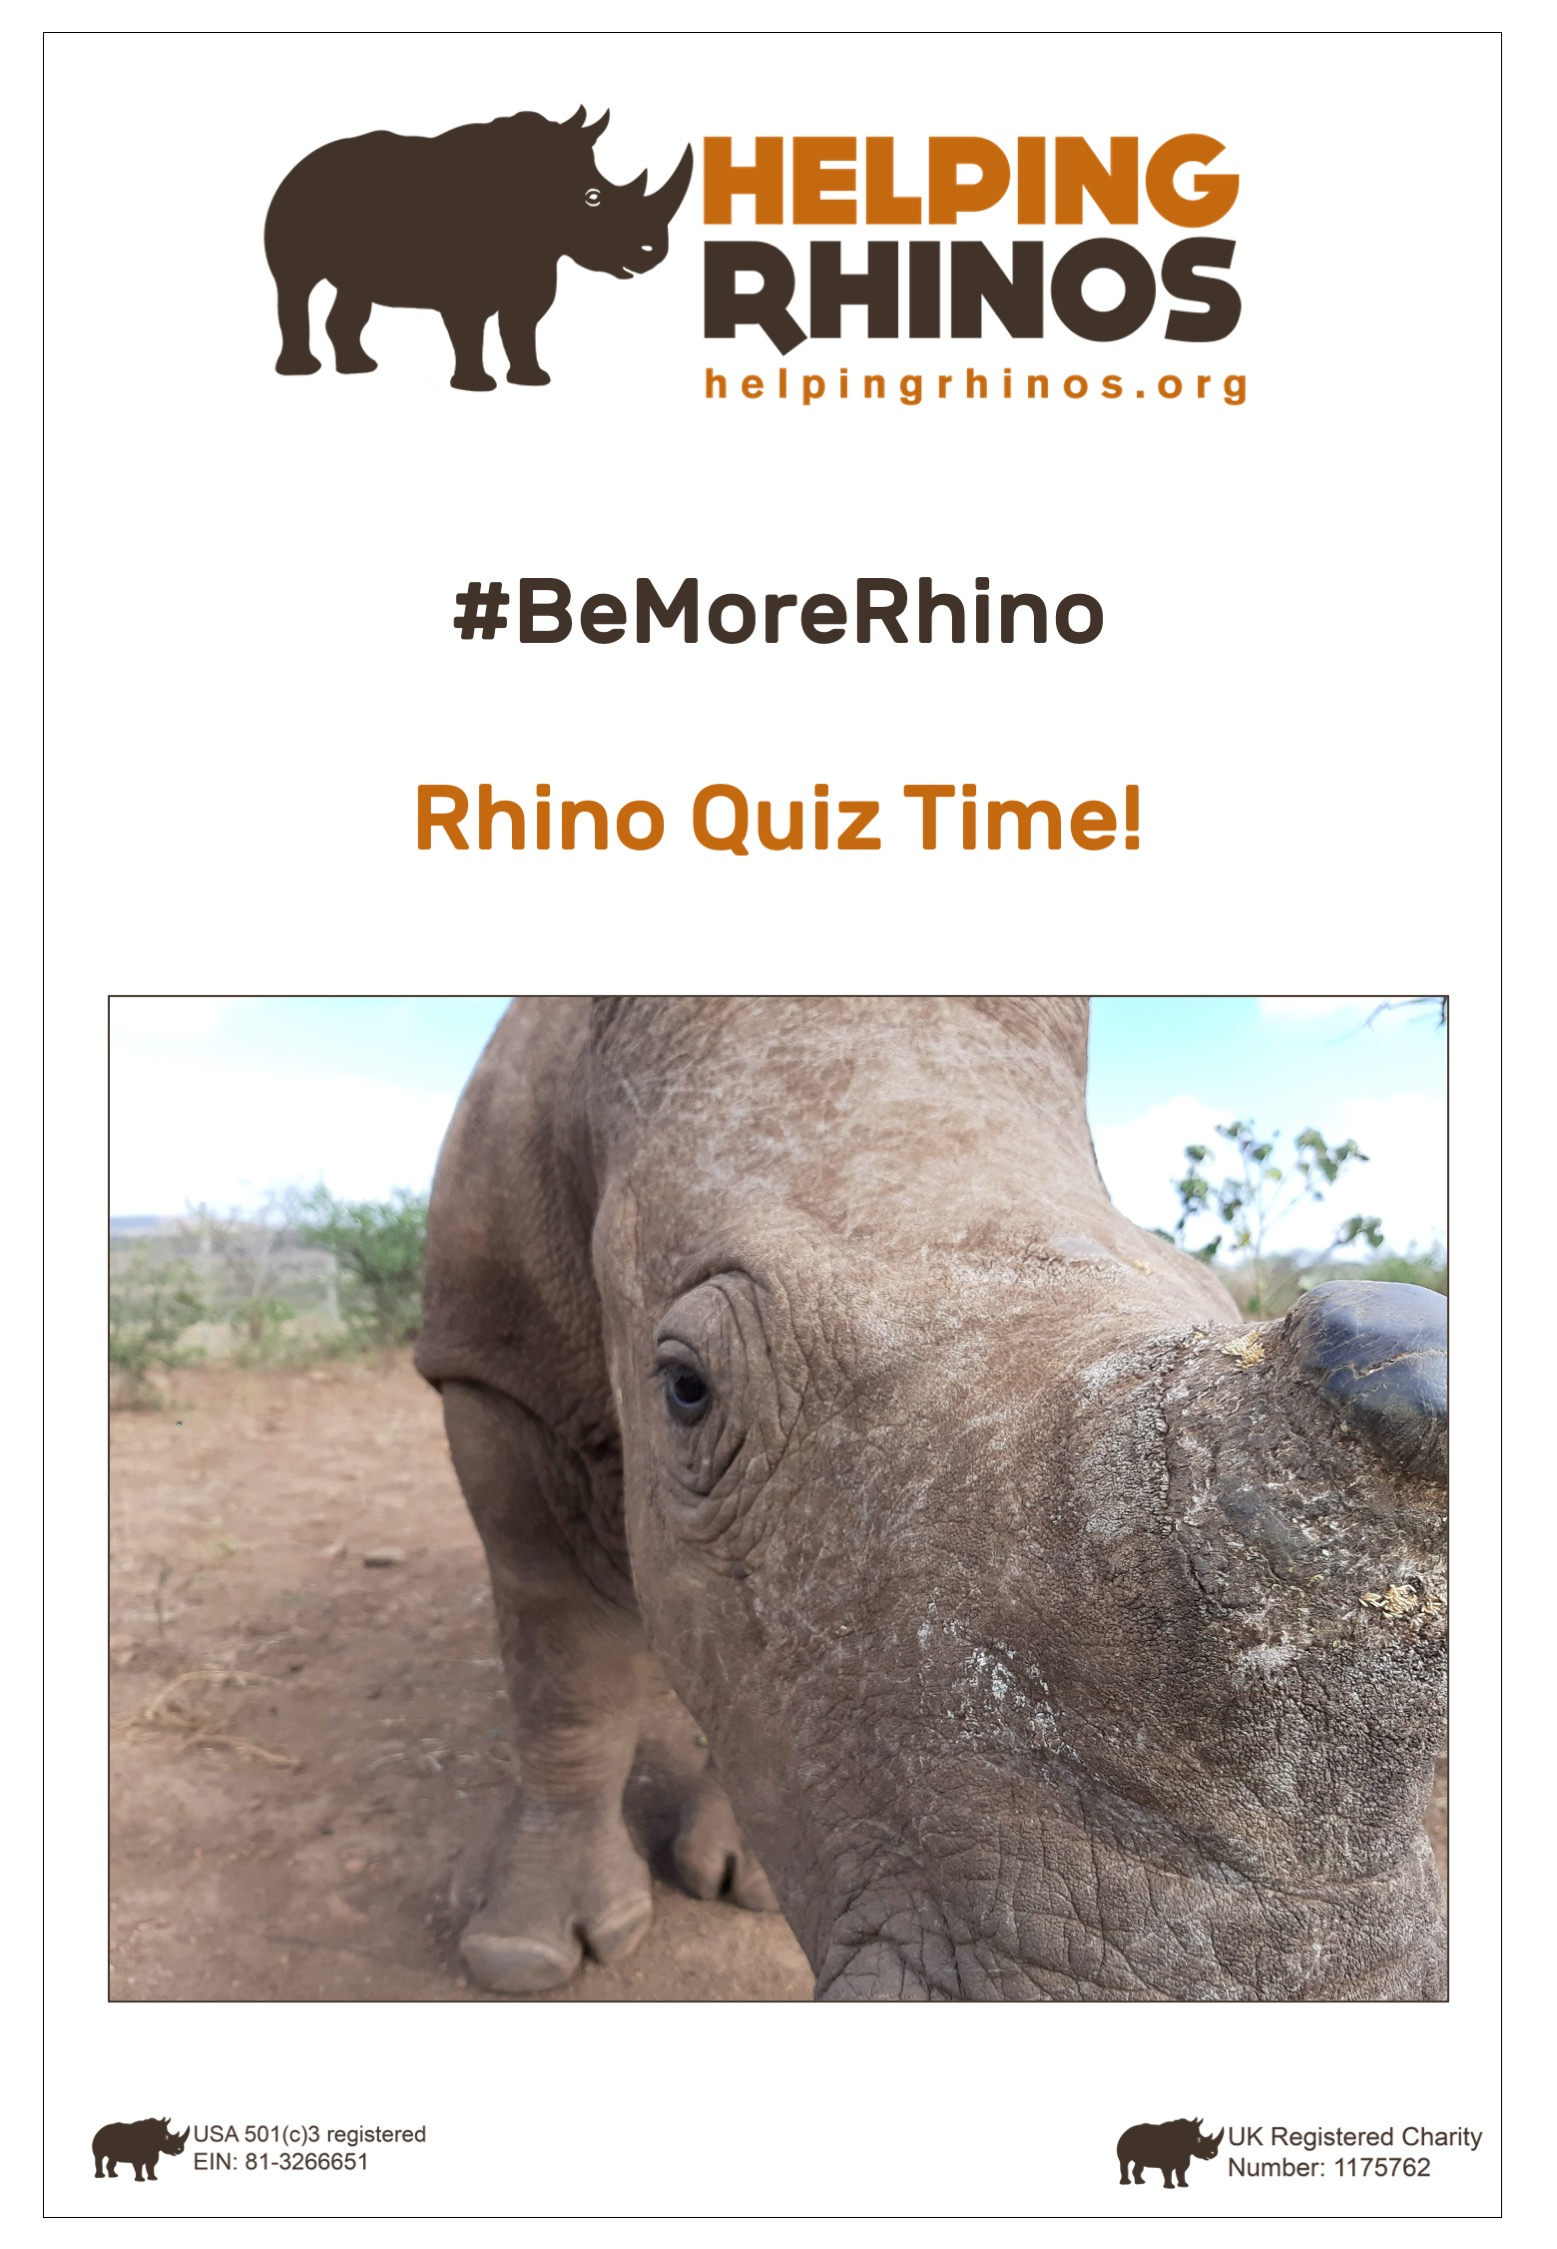 Rhino-Quiz-Time